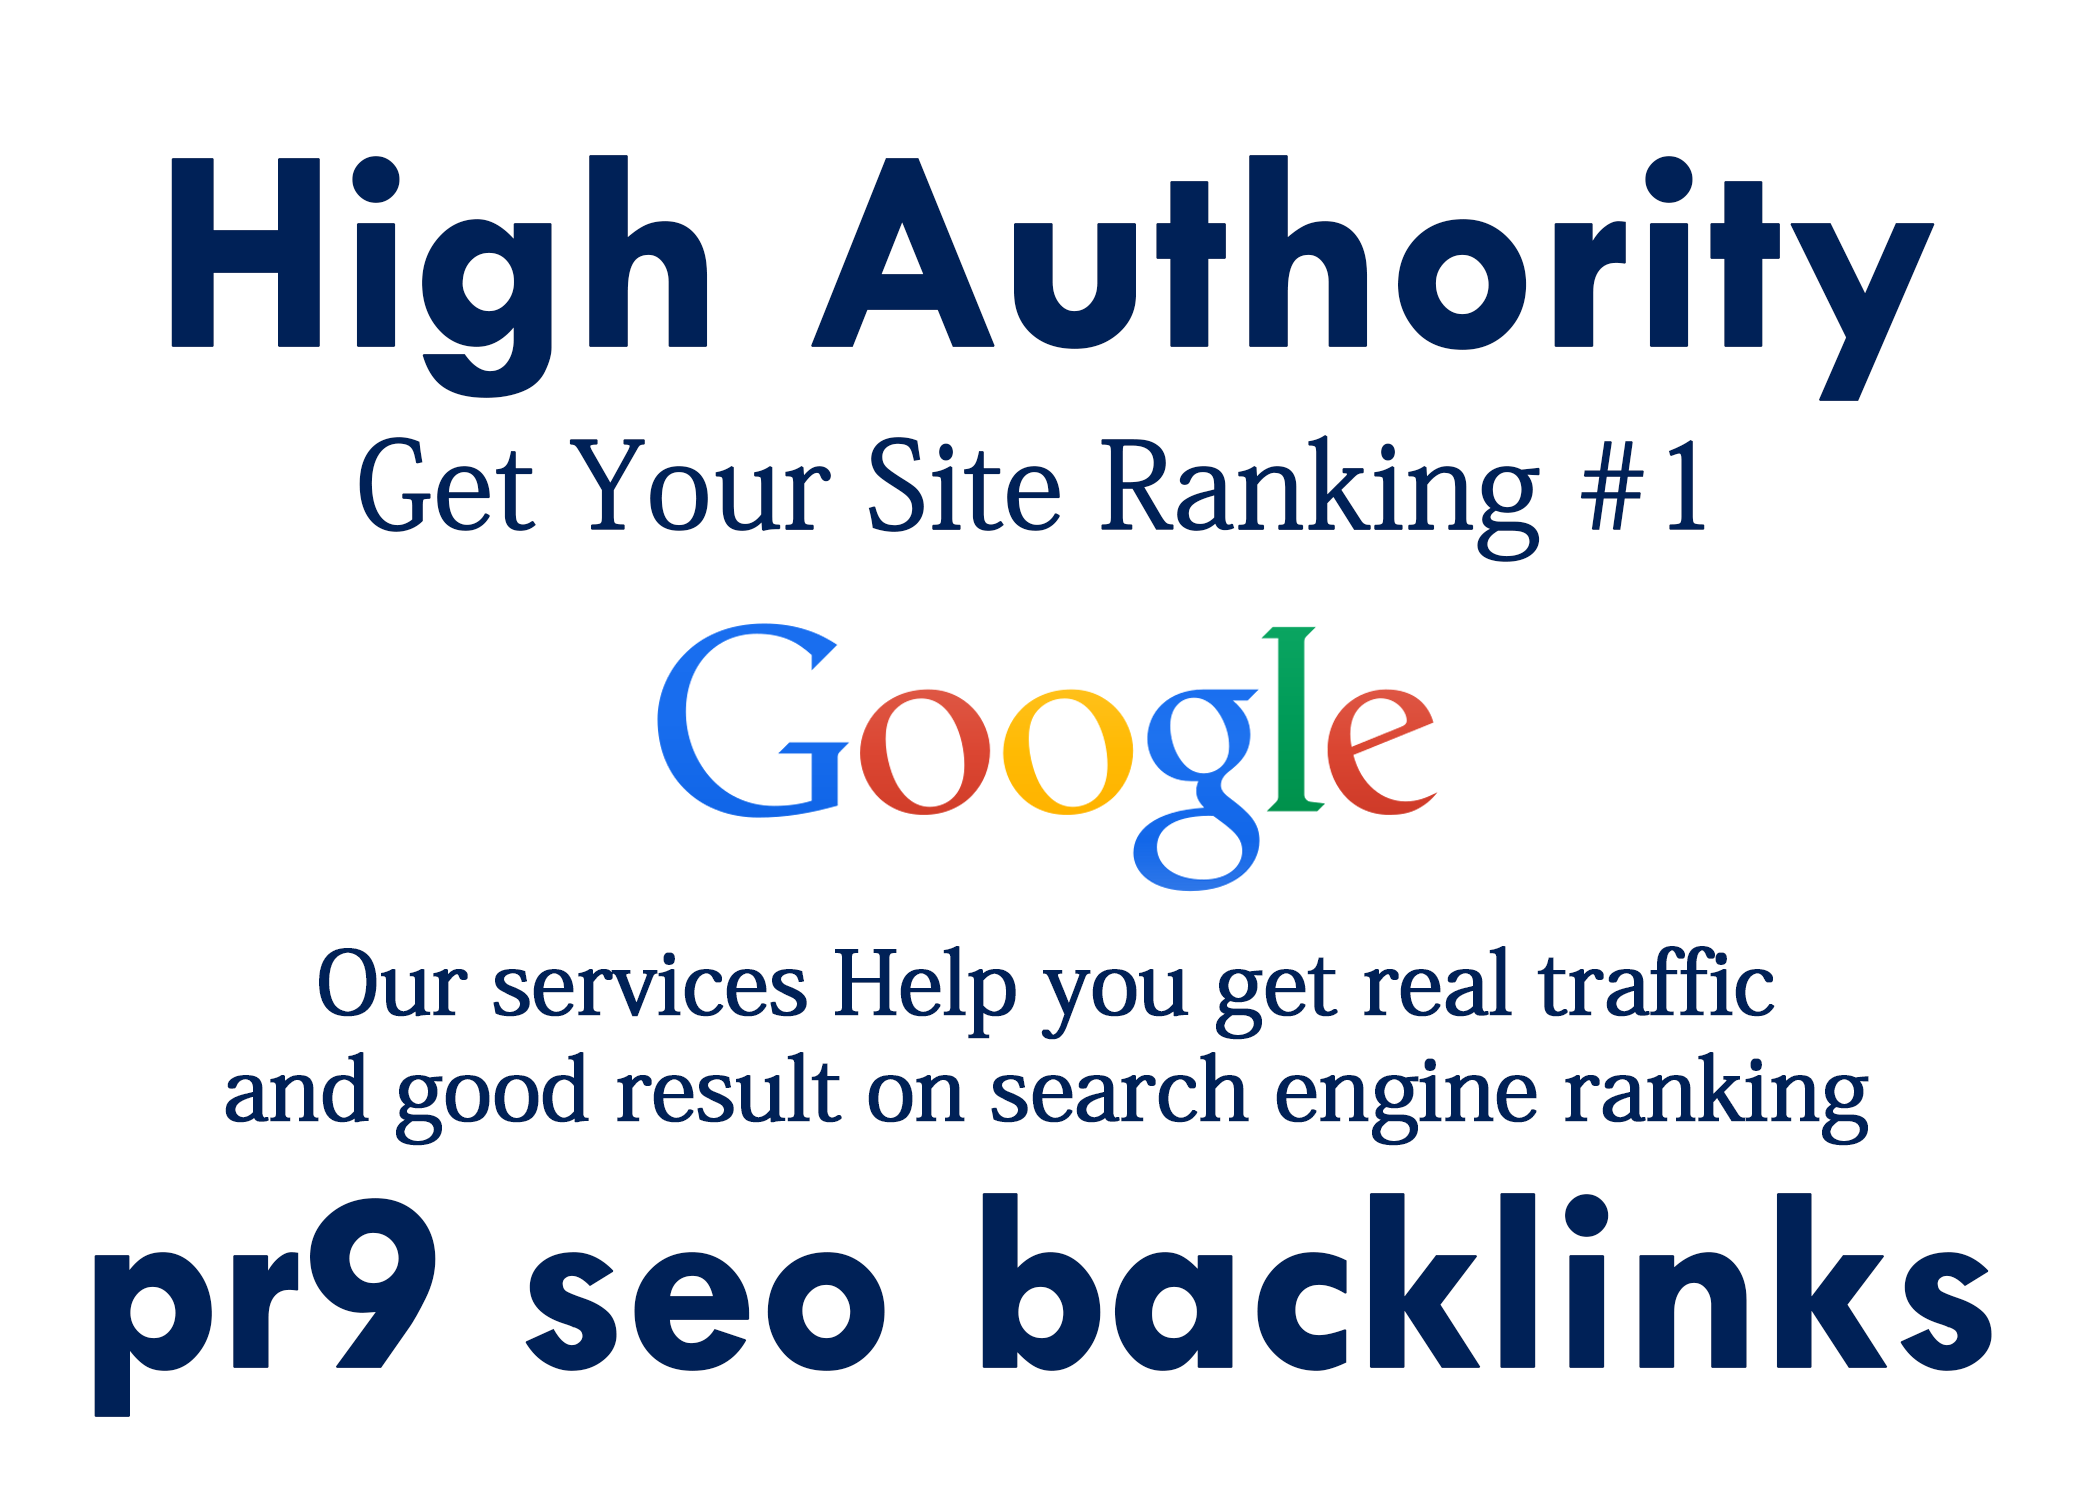 Create Manual 40 PR9 High Authority Backlinks  for Ranking Up Your Site On Google